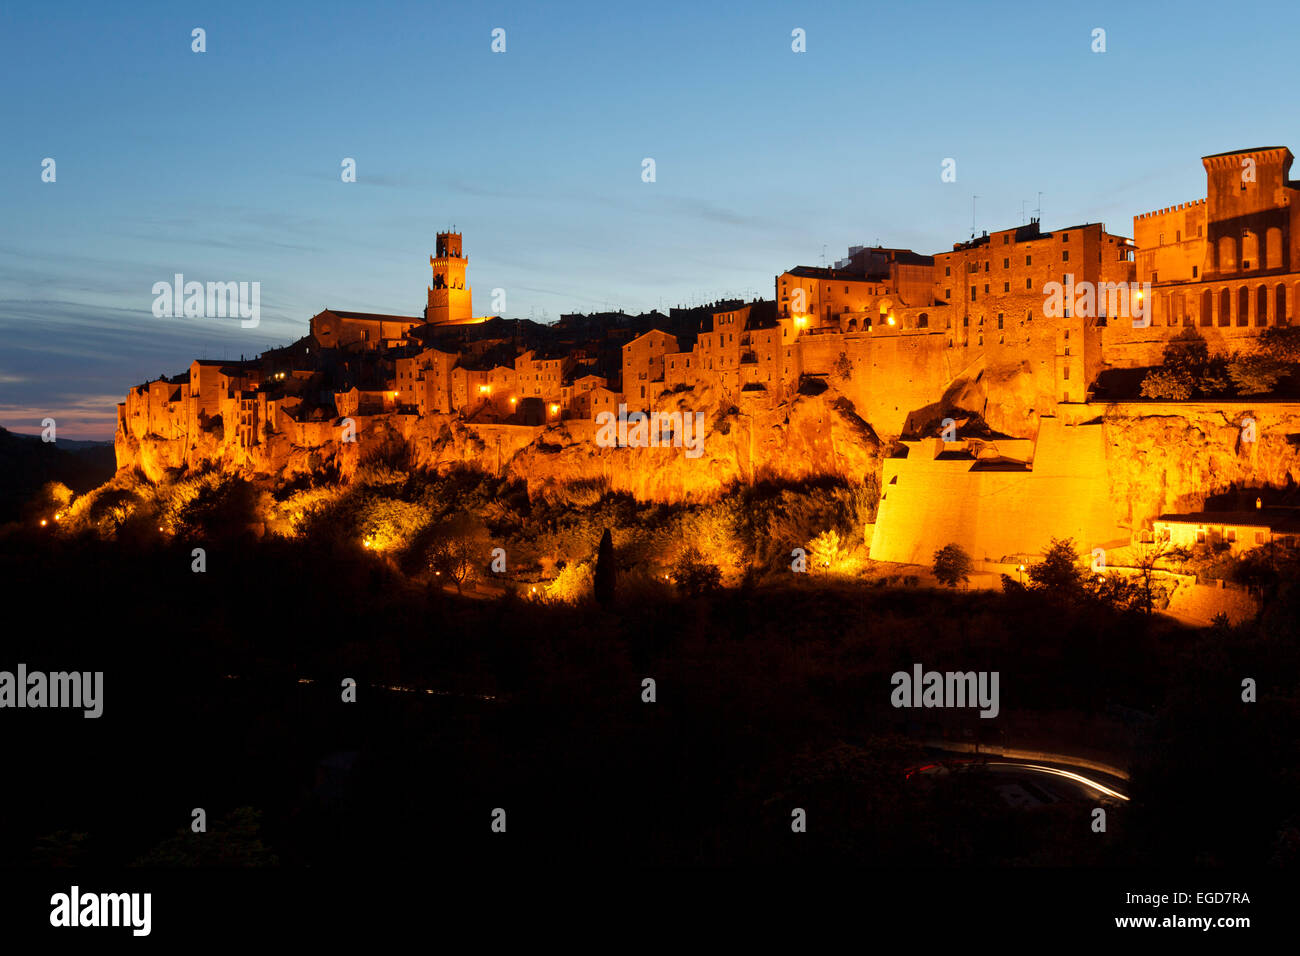 Pitigliano at night, hill town, province of Grosseto, Tuscany, Italy, Europe - Stock Image